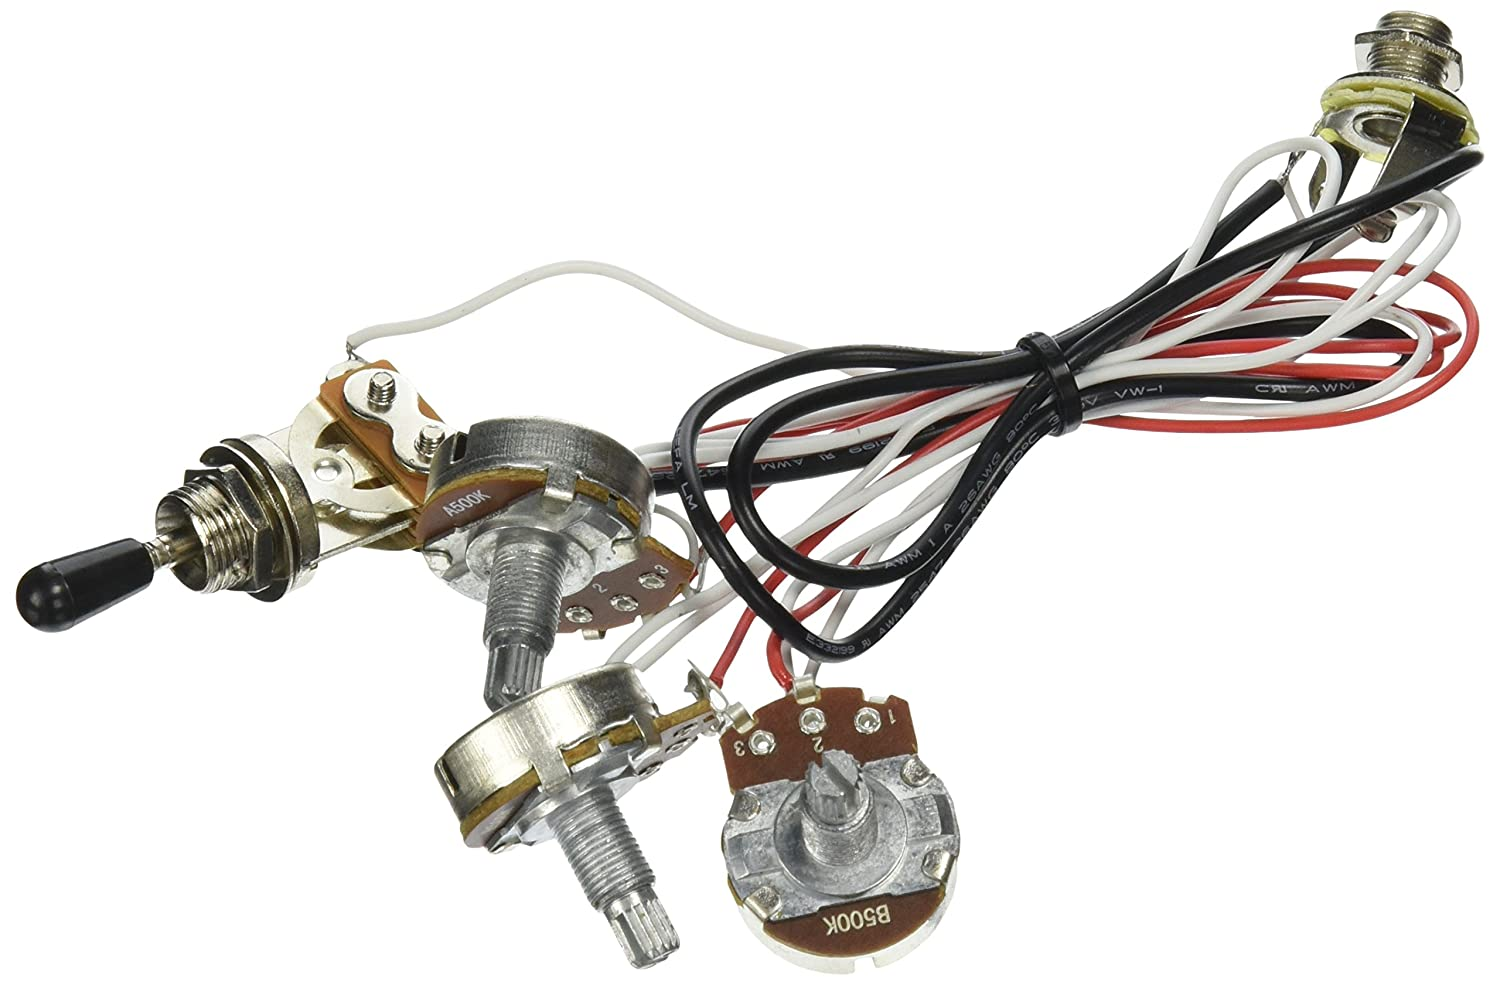 81vE7FvrQHL._SL1500_ amazon com kmise mi0318 guitar wiring harness 2 volume 1 tone 2 volume 1 tone wiring harness at gsmx.co